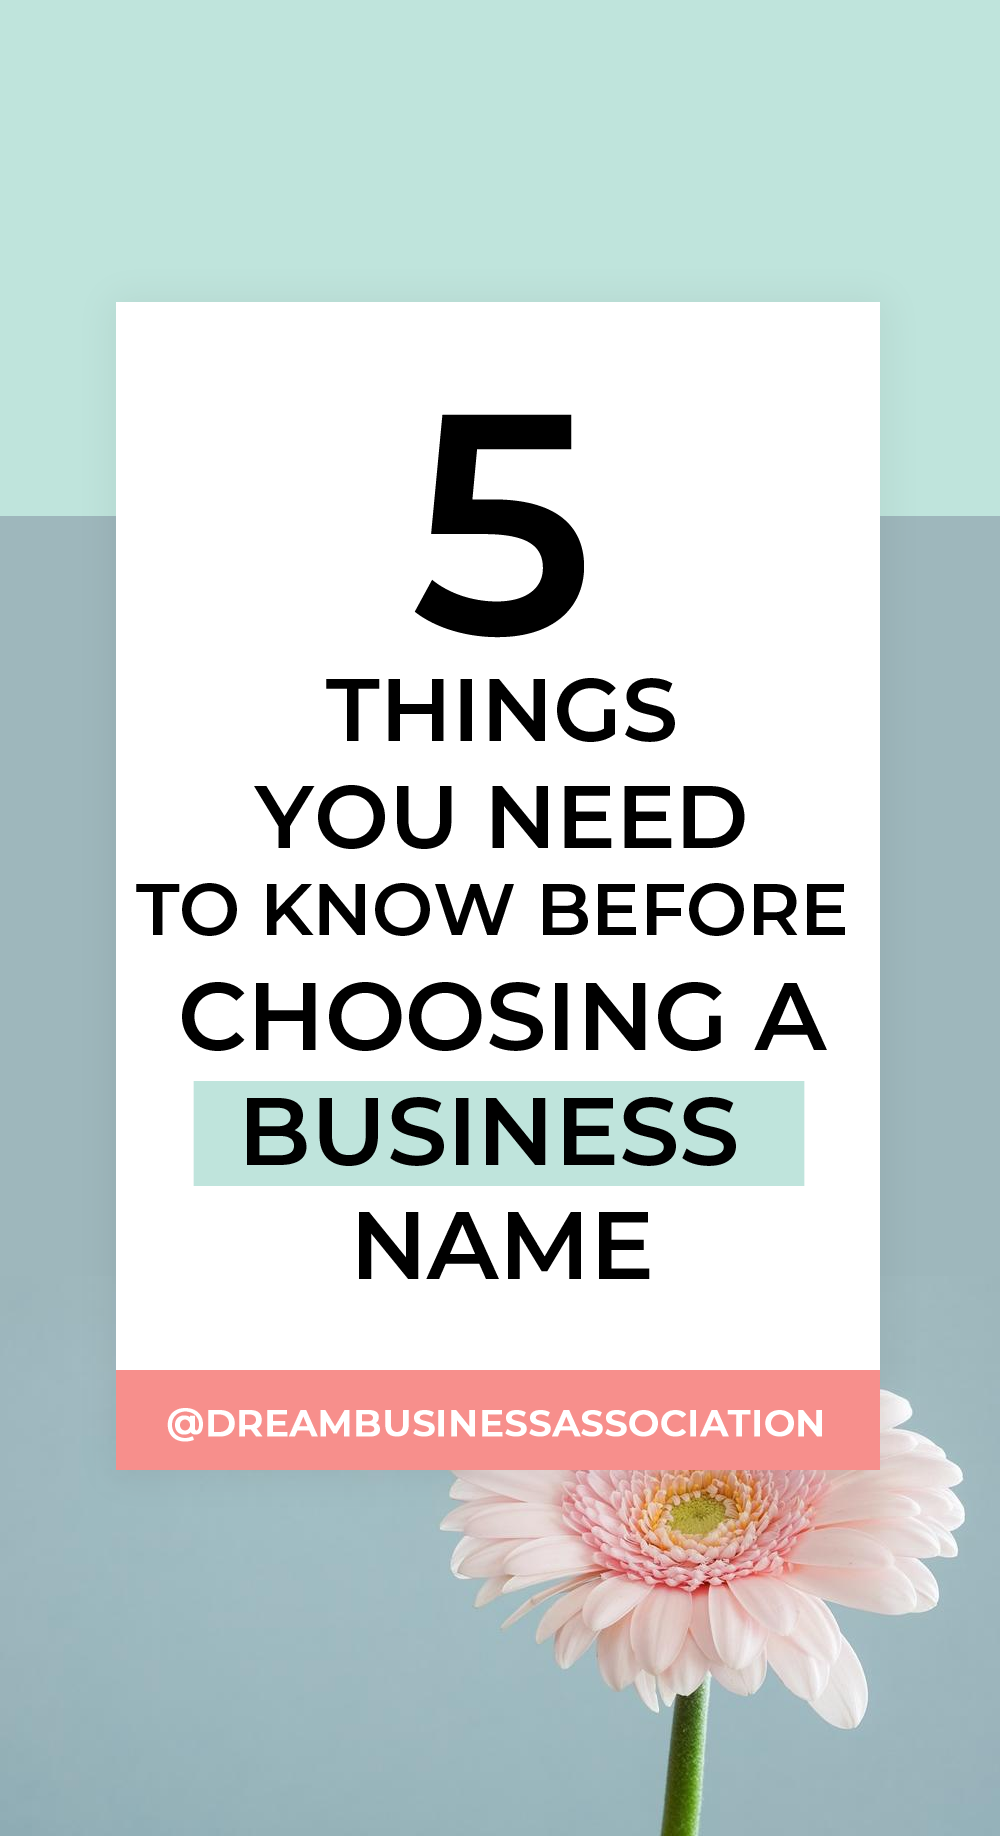 Your business name is the No.1 thing that you need to put the most energy and time into thinking about. So here are my top 5 things you should know before choosing a business name #smallbusiness #startup #selfemployed